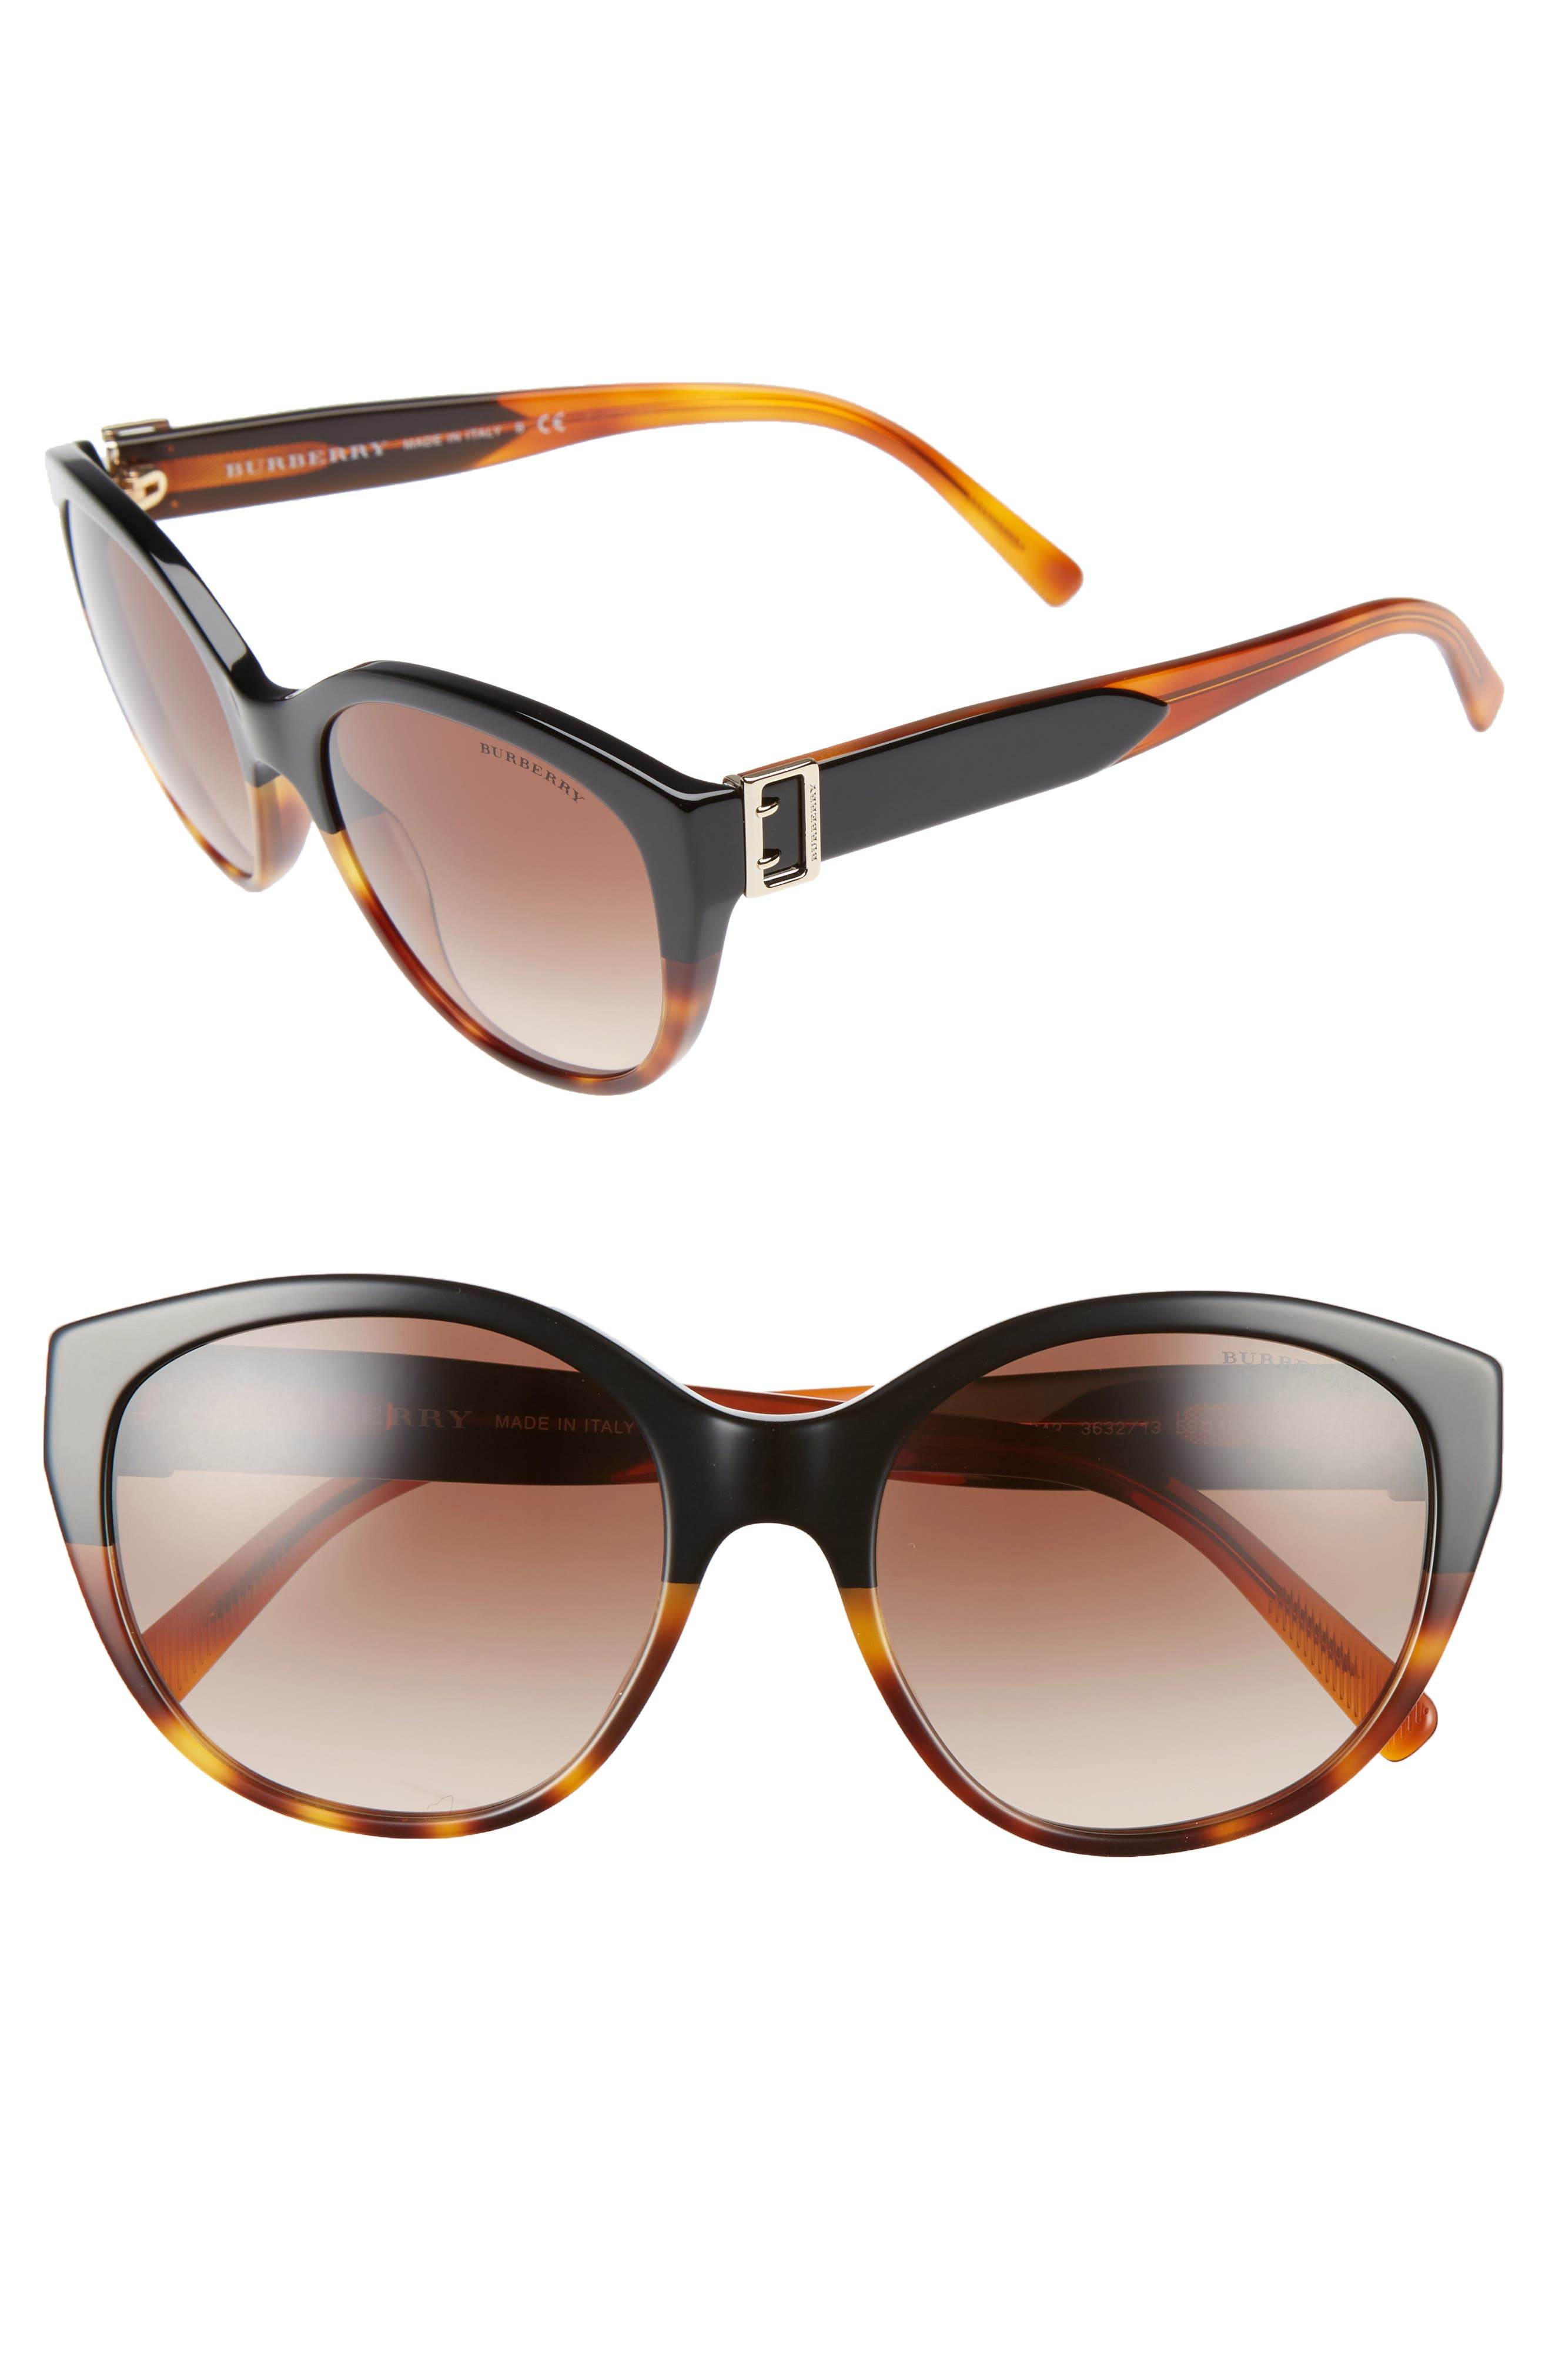 Burberry 55mm Gradient Cat Eye Sunglasses